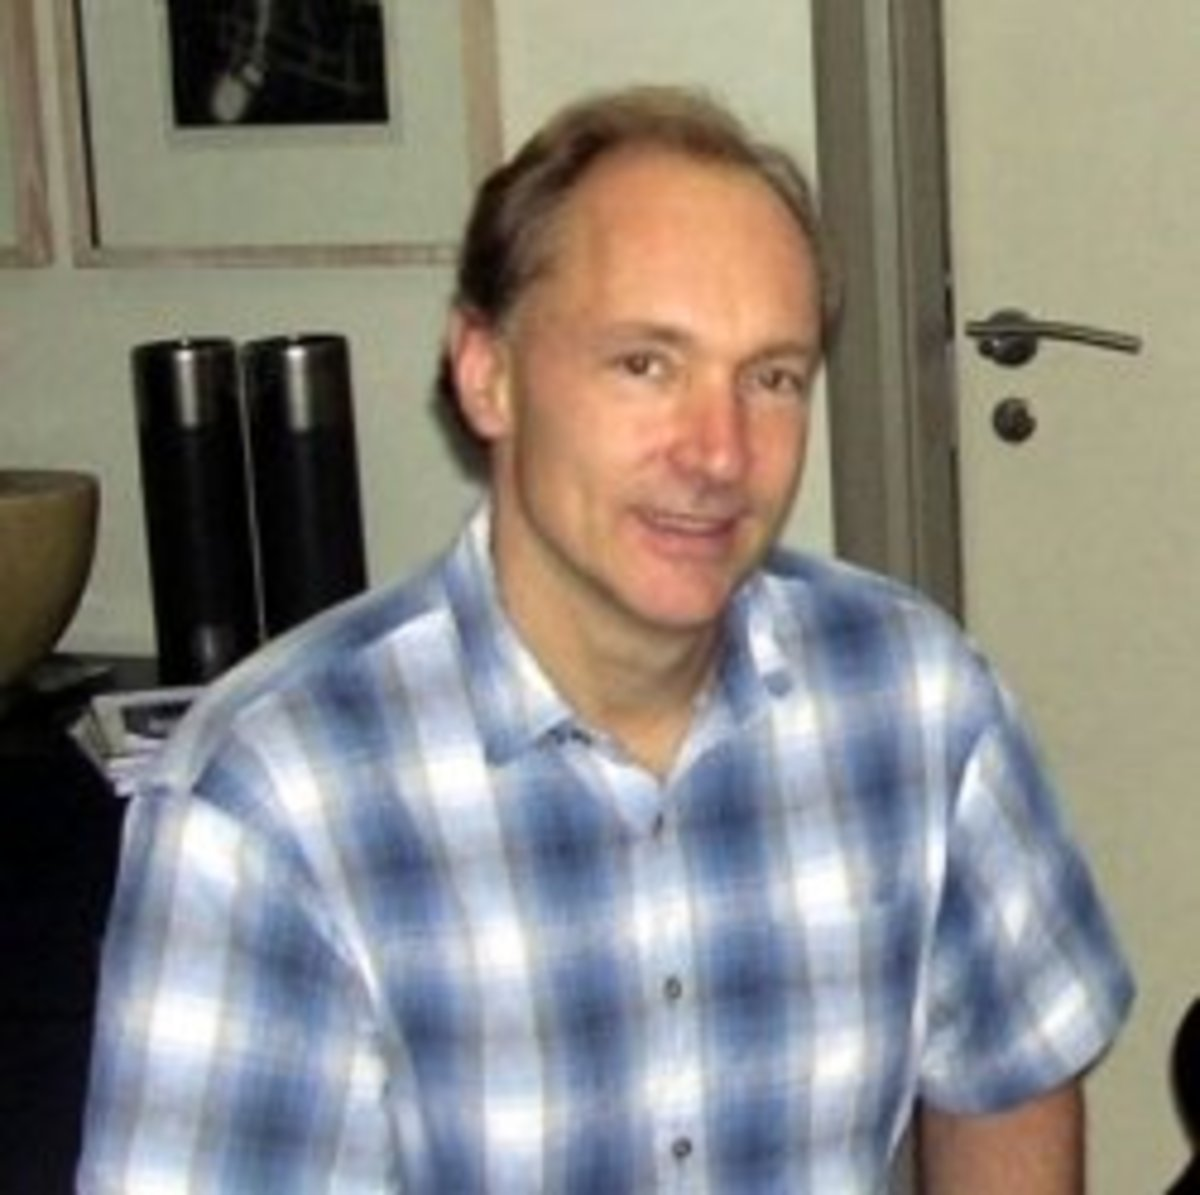 Quotes about the Internet from Tim Berners-Lee